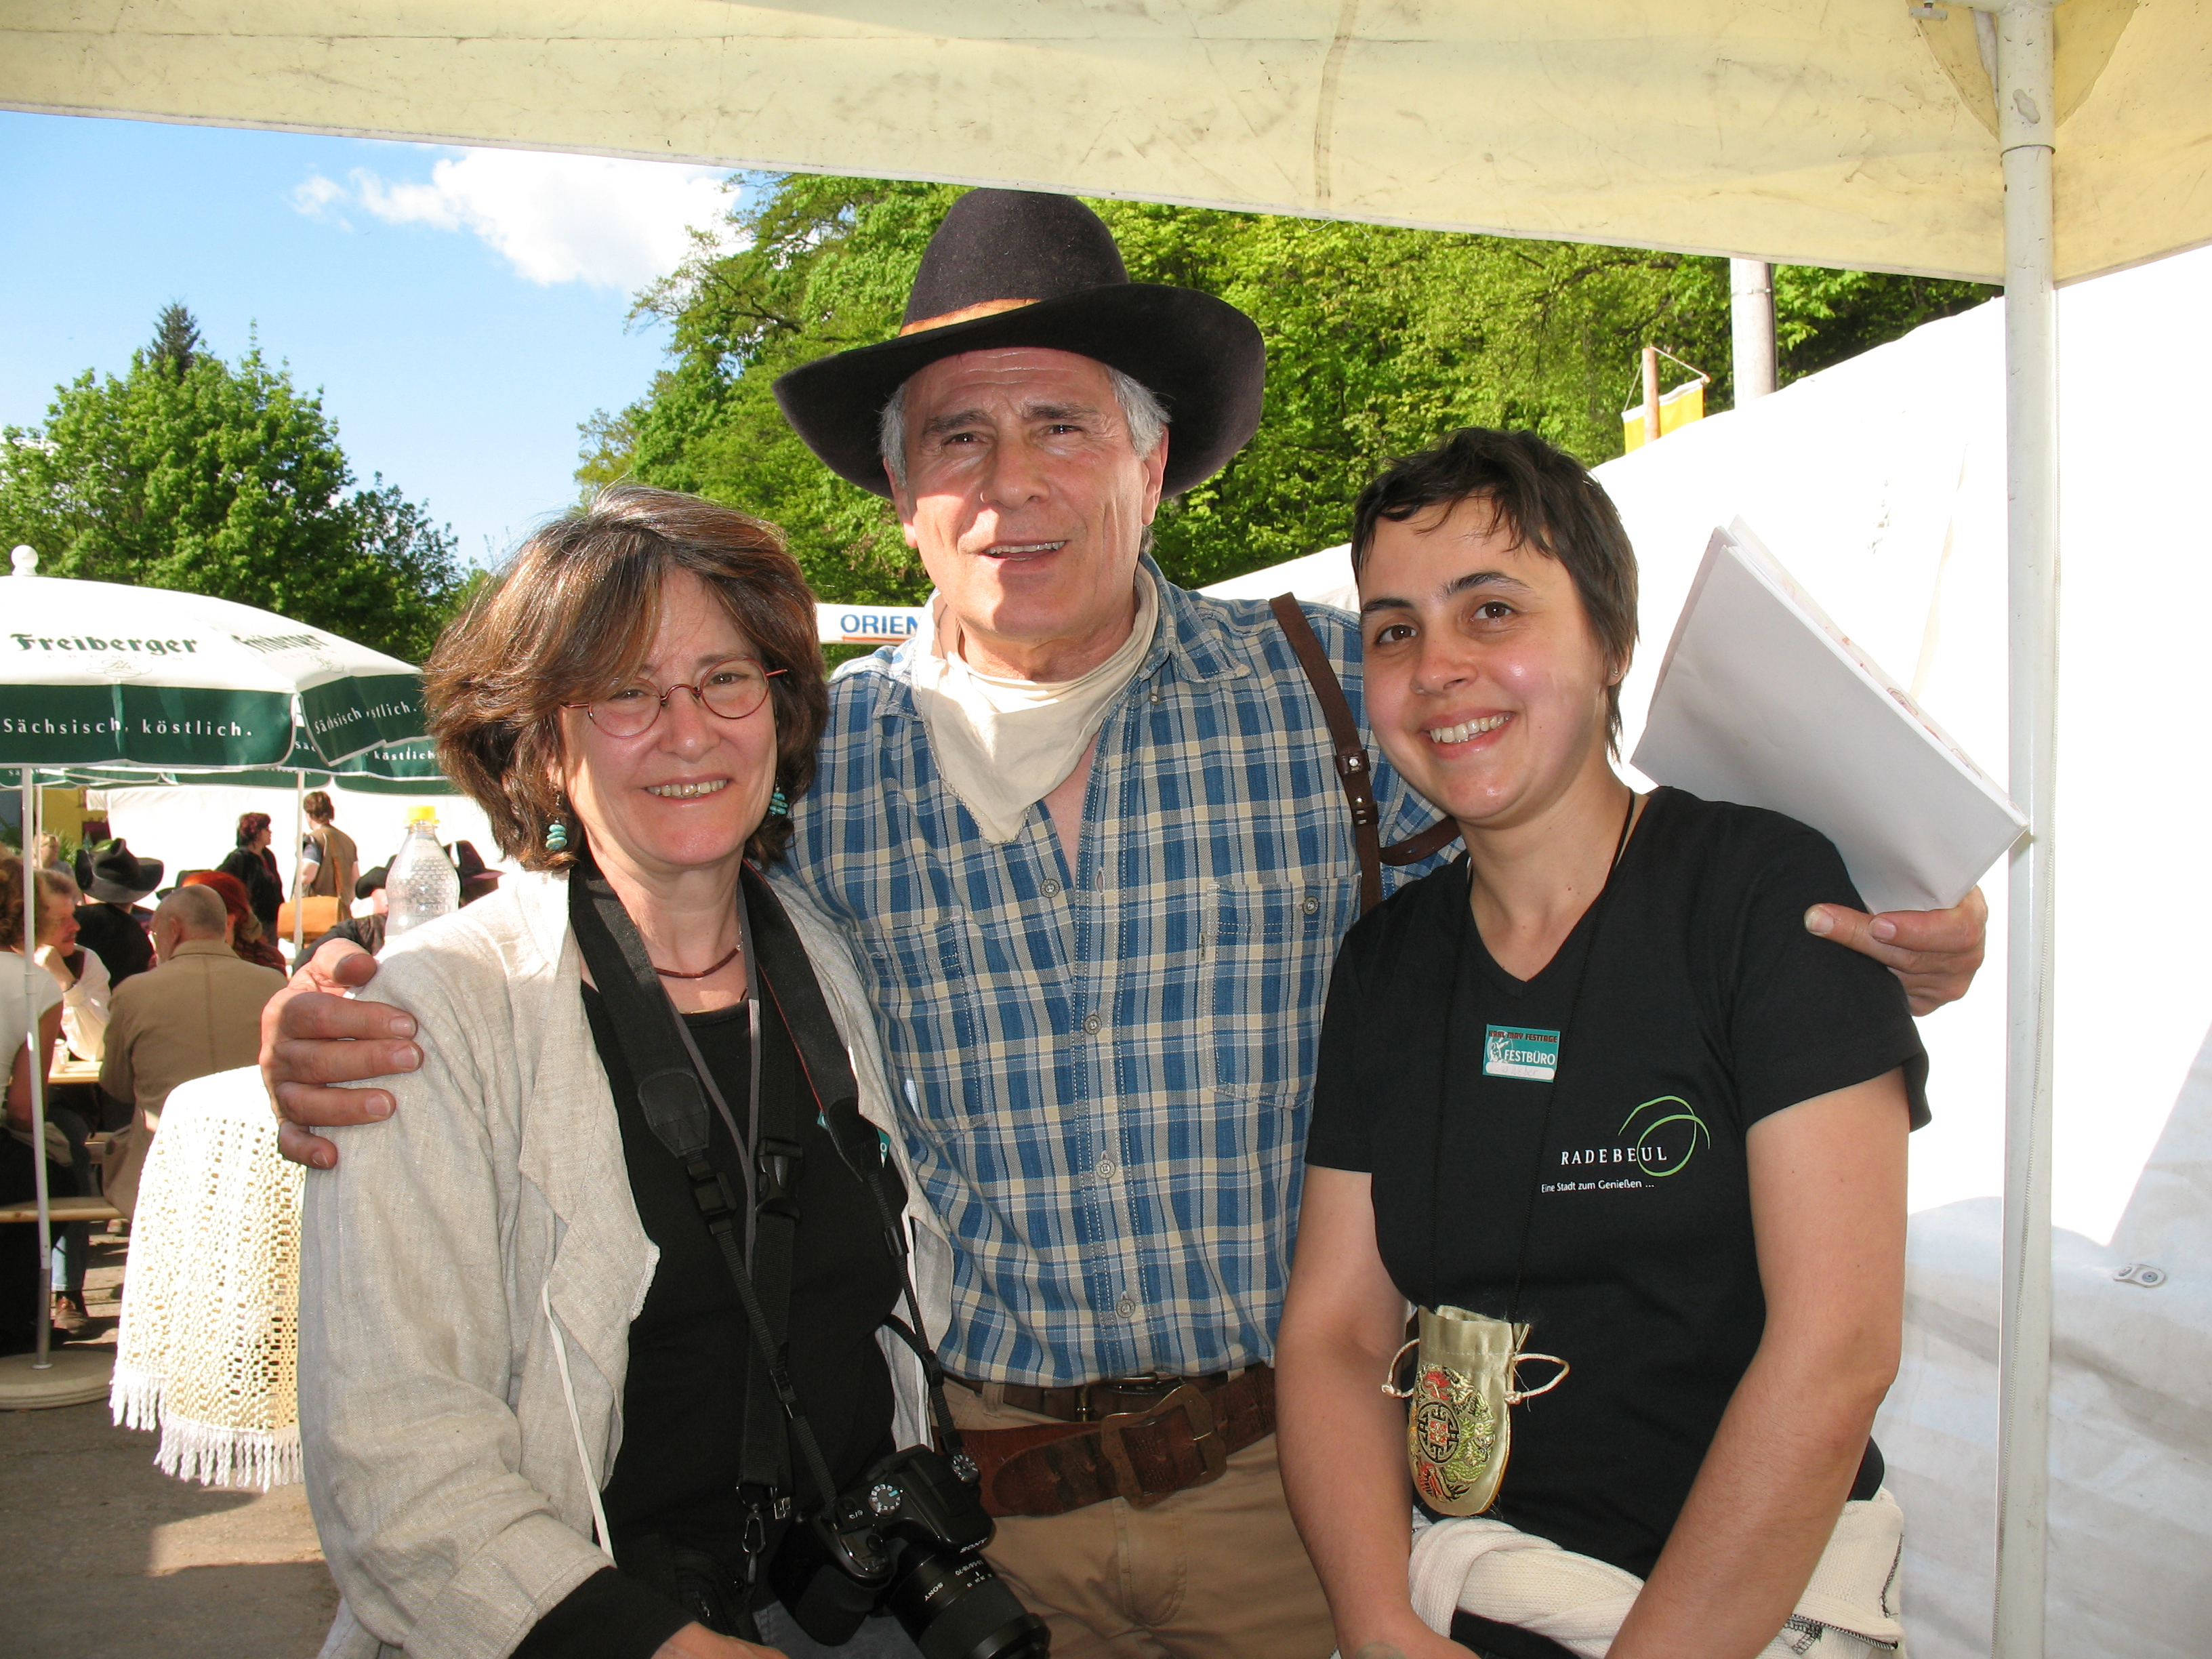 Dana Weber, Gojko Mitic, and me at the Karl May festival in Radebeul, 2008